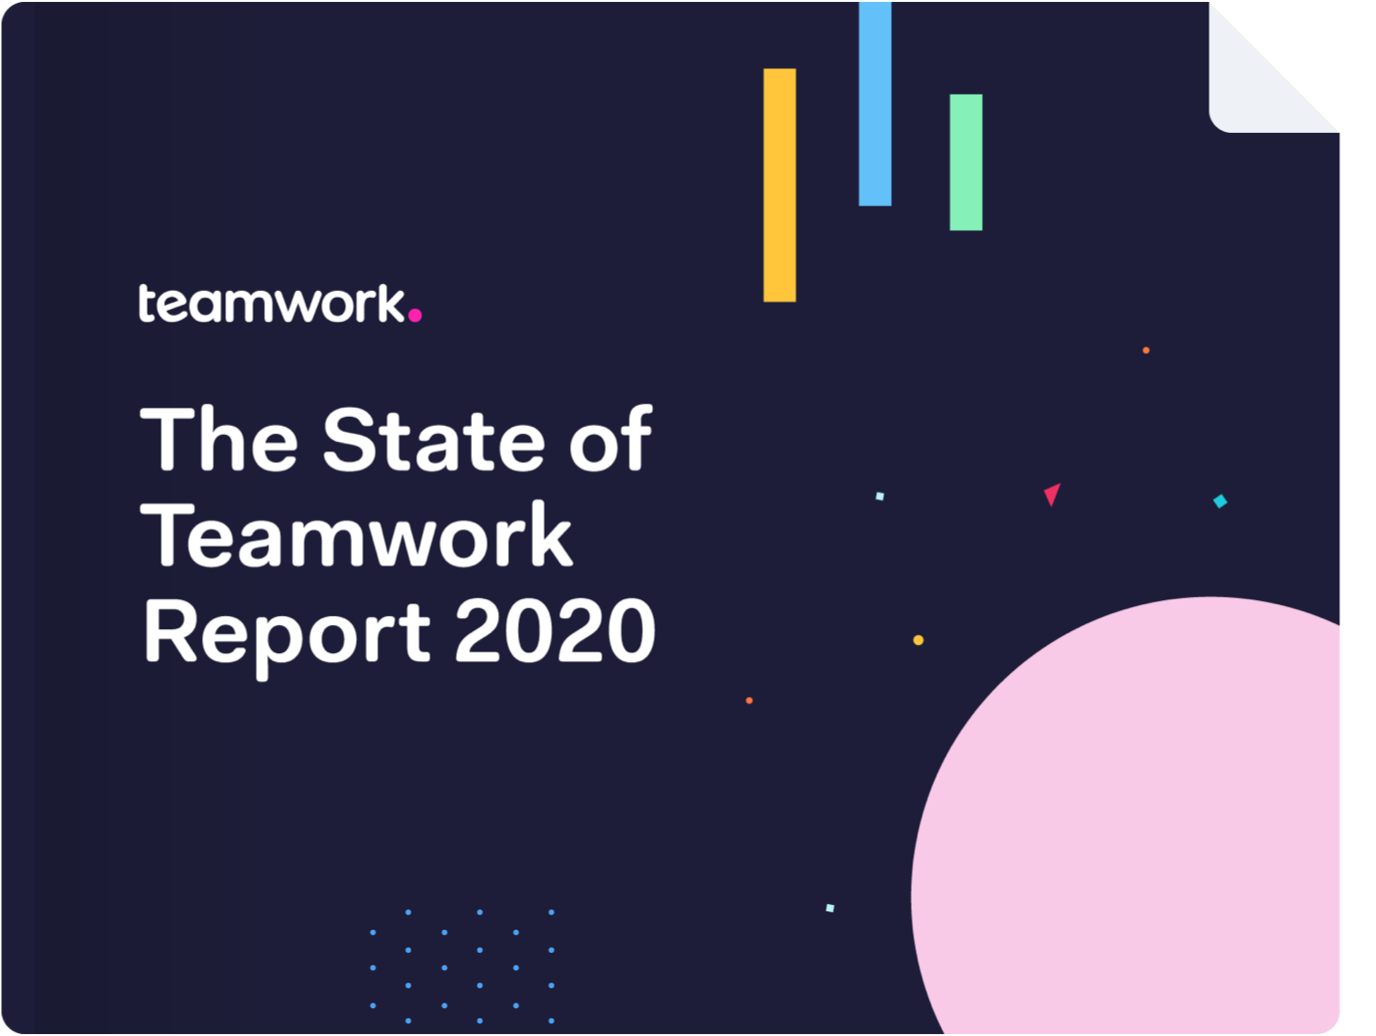 What does teamwork look like in 2020?